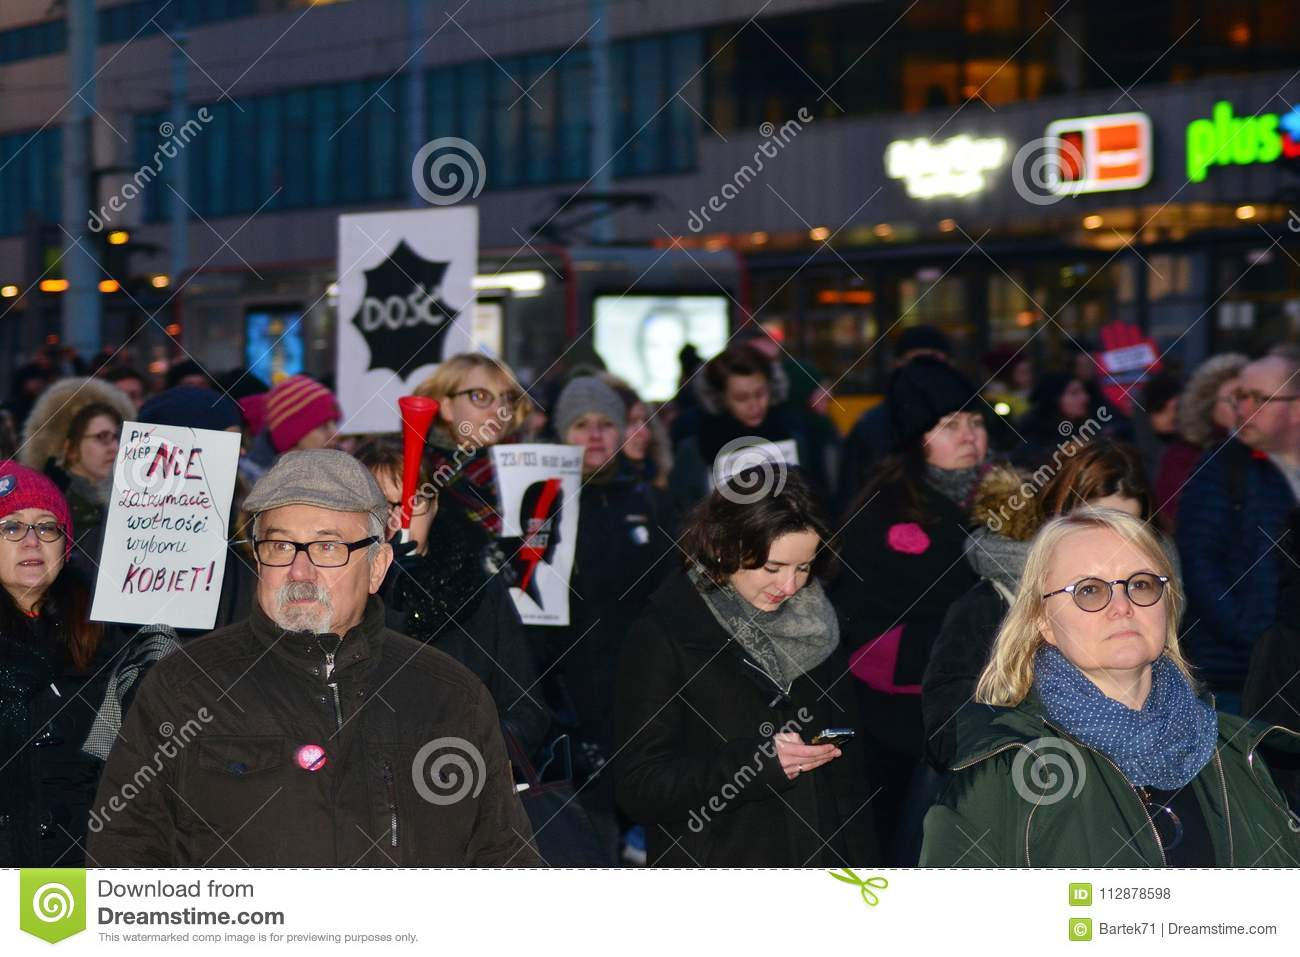 Thousands of people protests in Warsaw